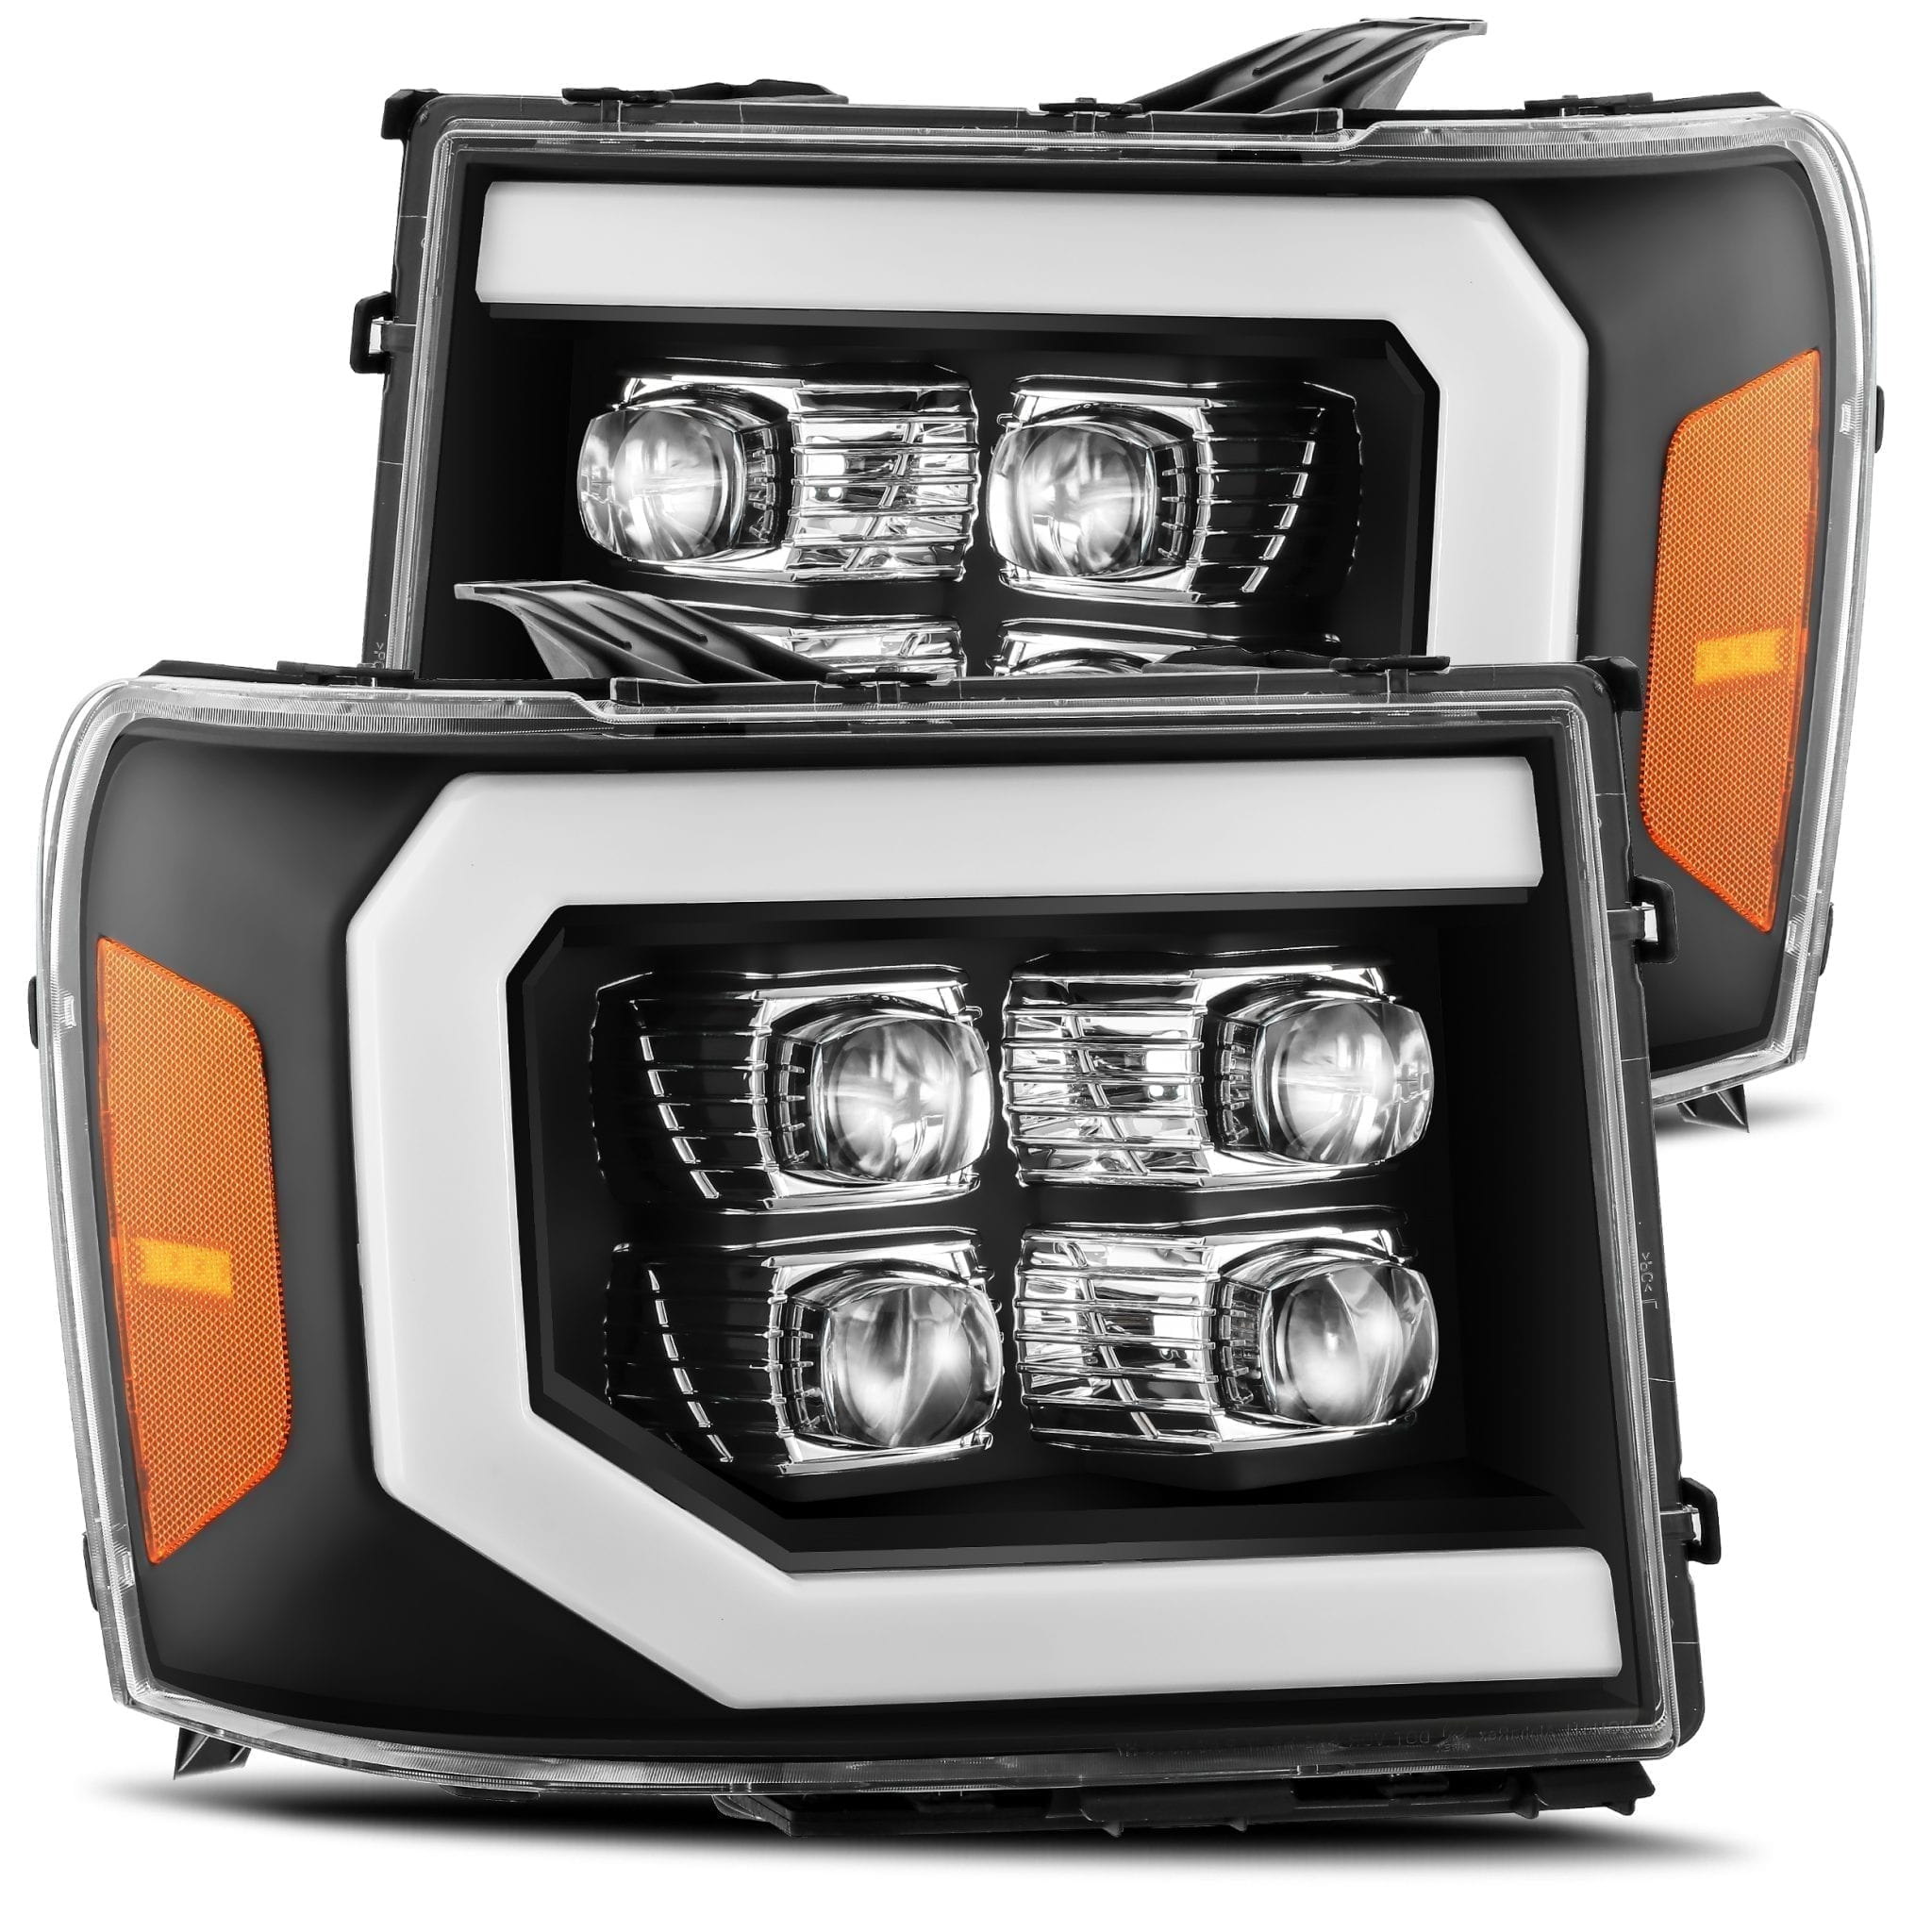 2007 2008 2009 2010 2011 2012 2013 GMC Sierra NOVA-Series Full LED Projector Headlights Black